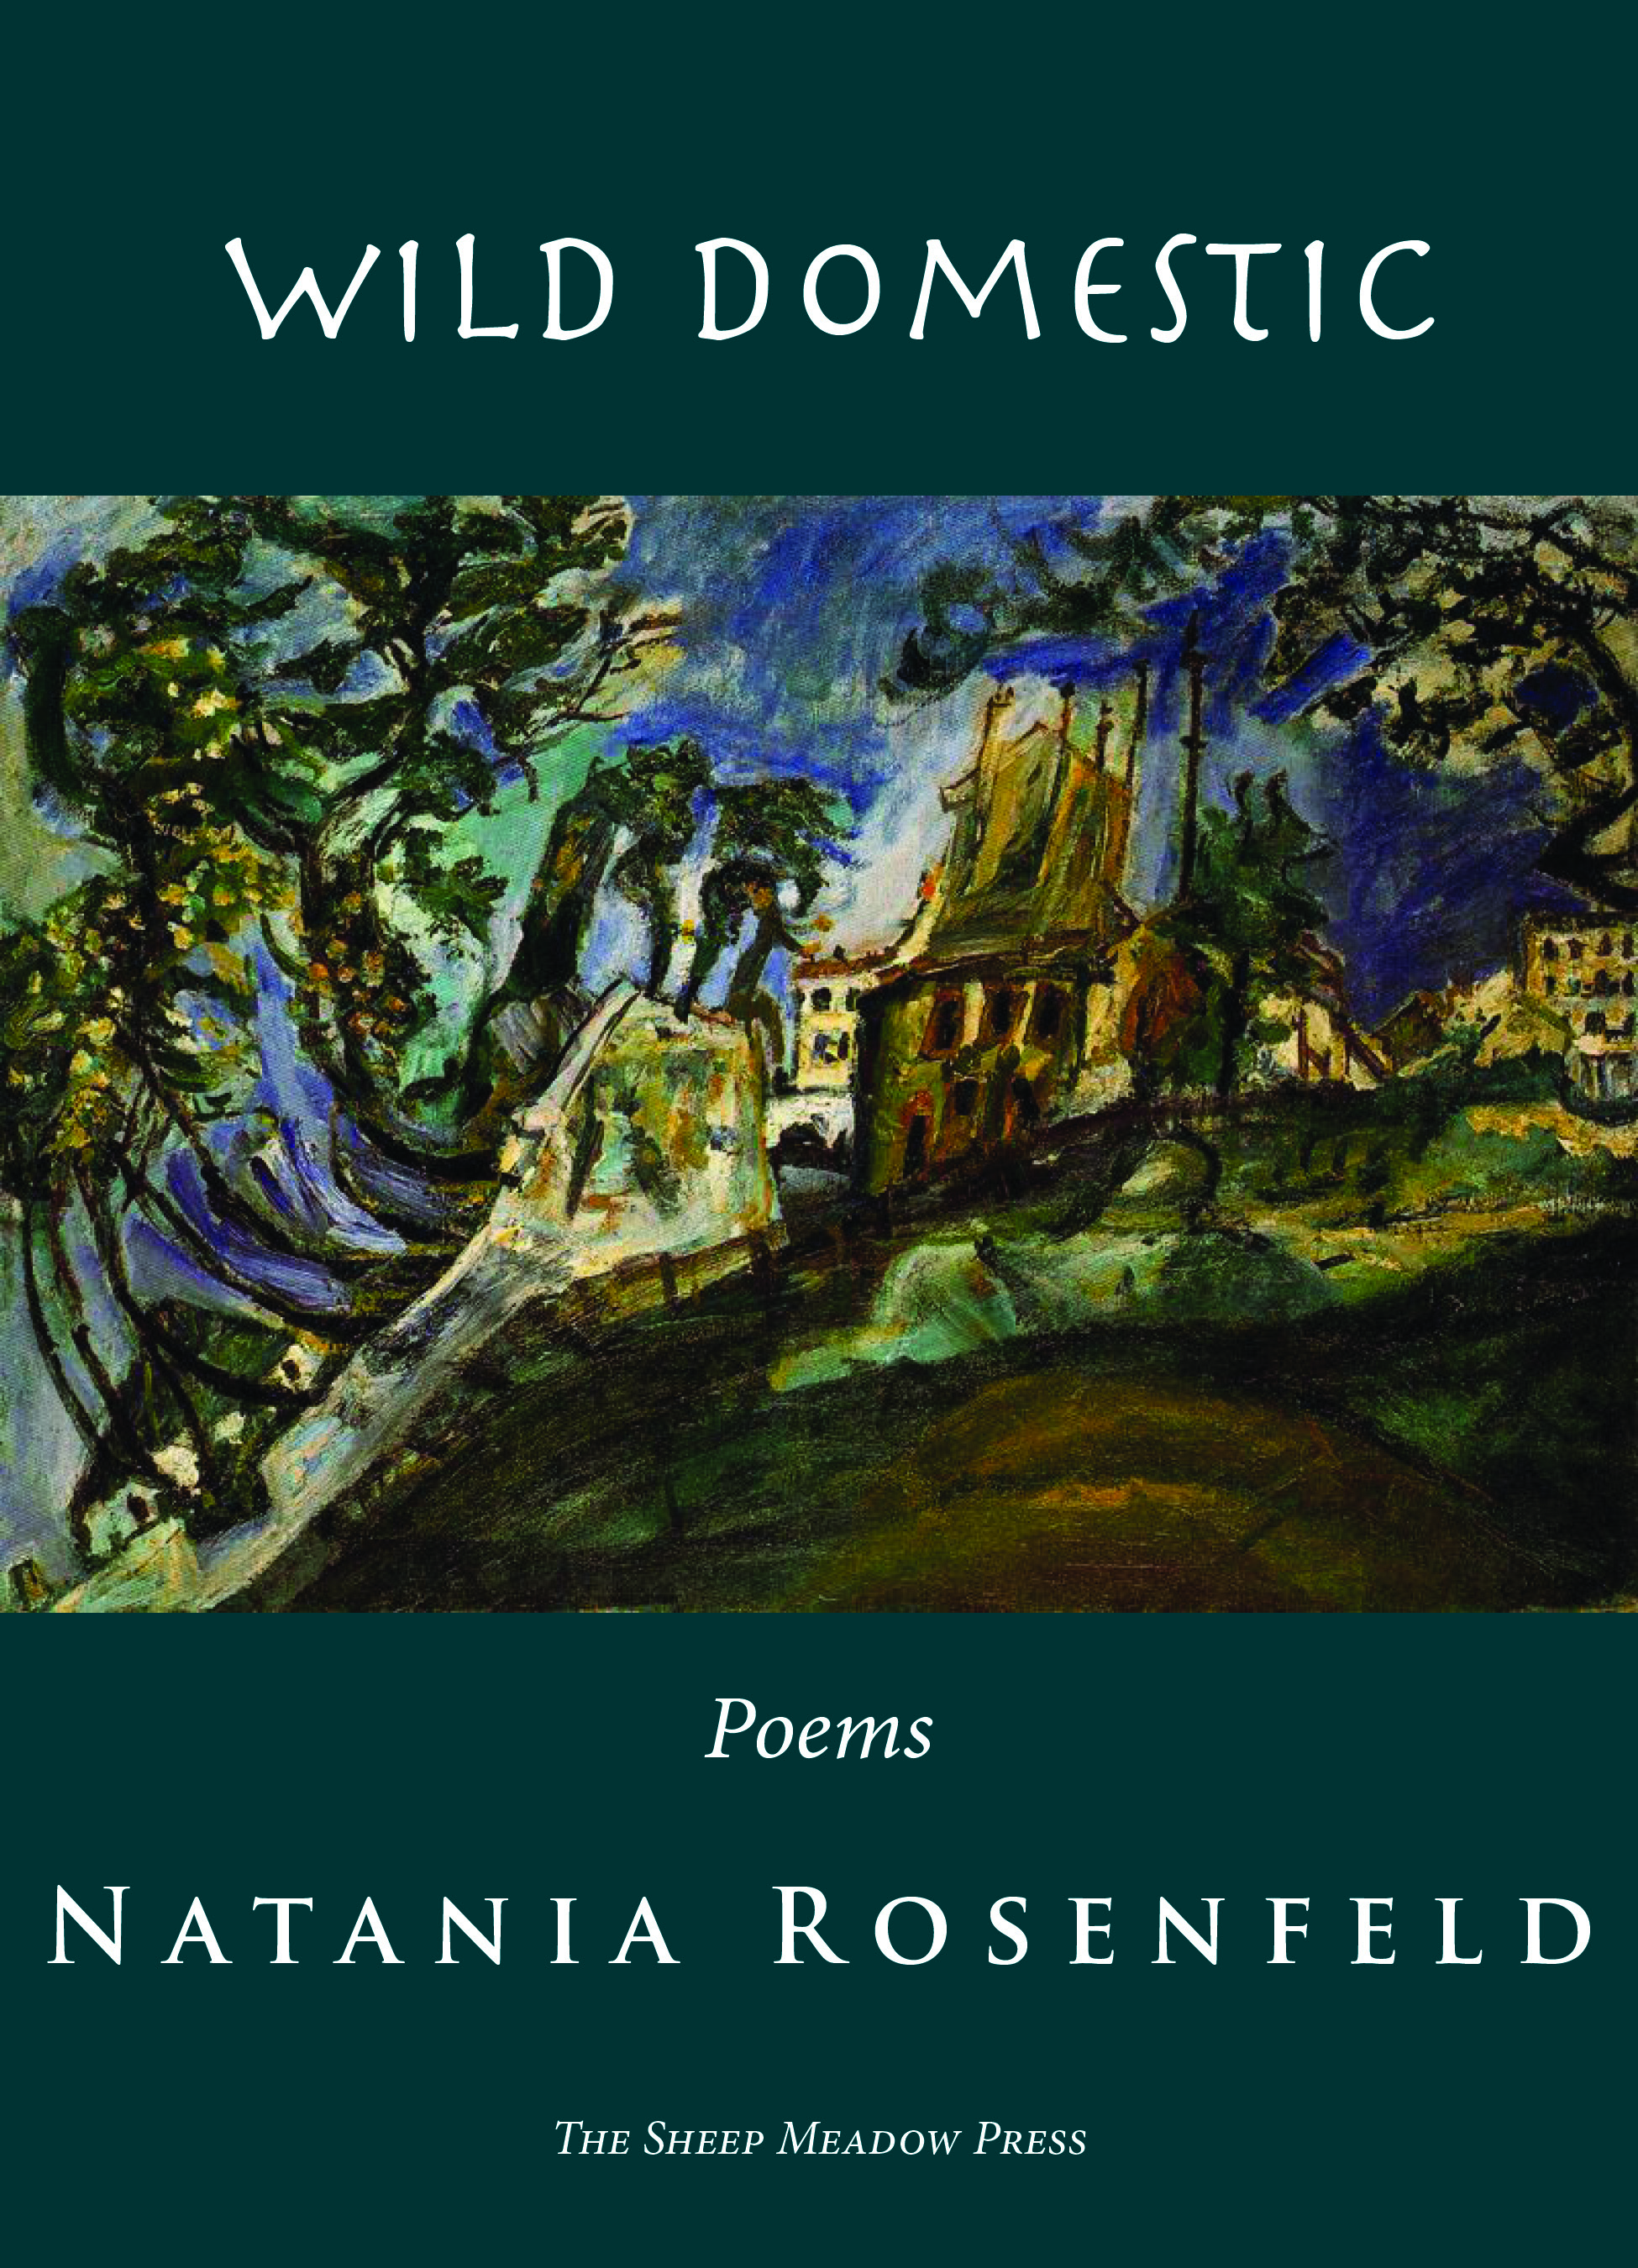 Rosenfeld_Cover_JPEG copy.jpg